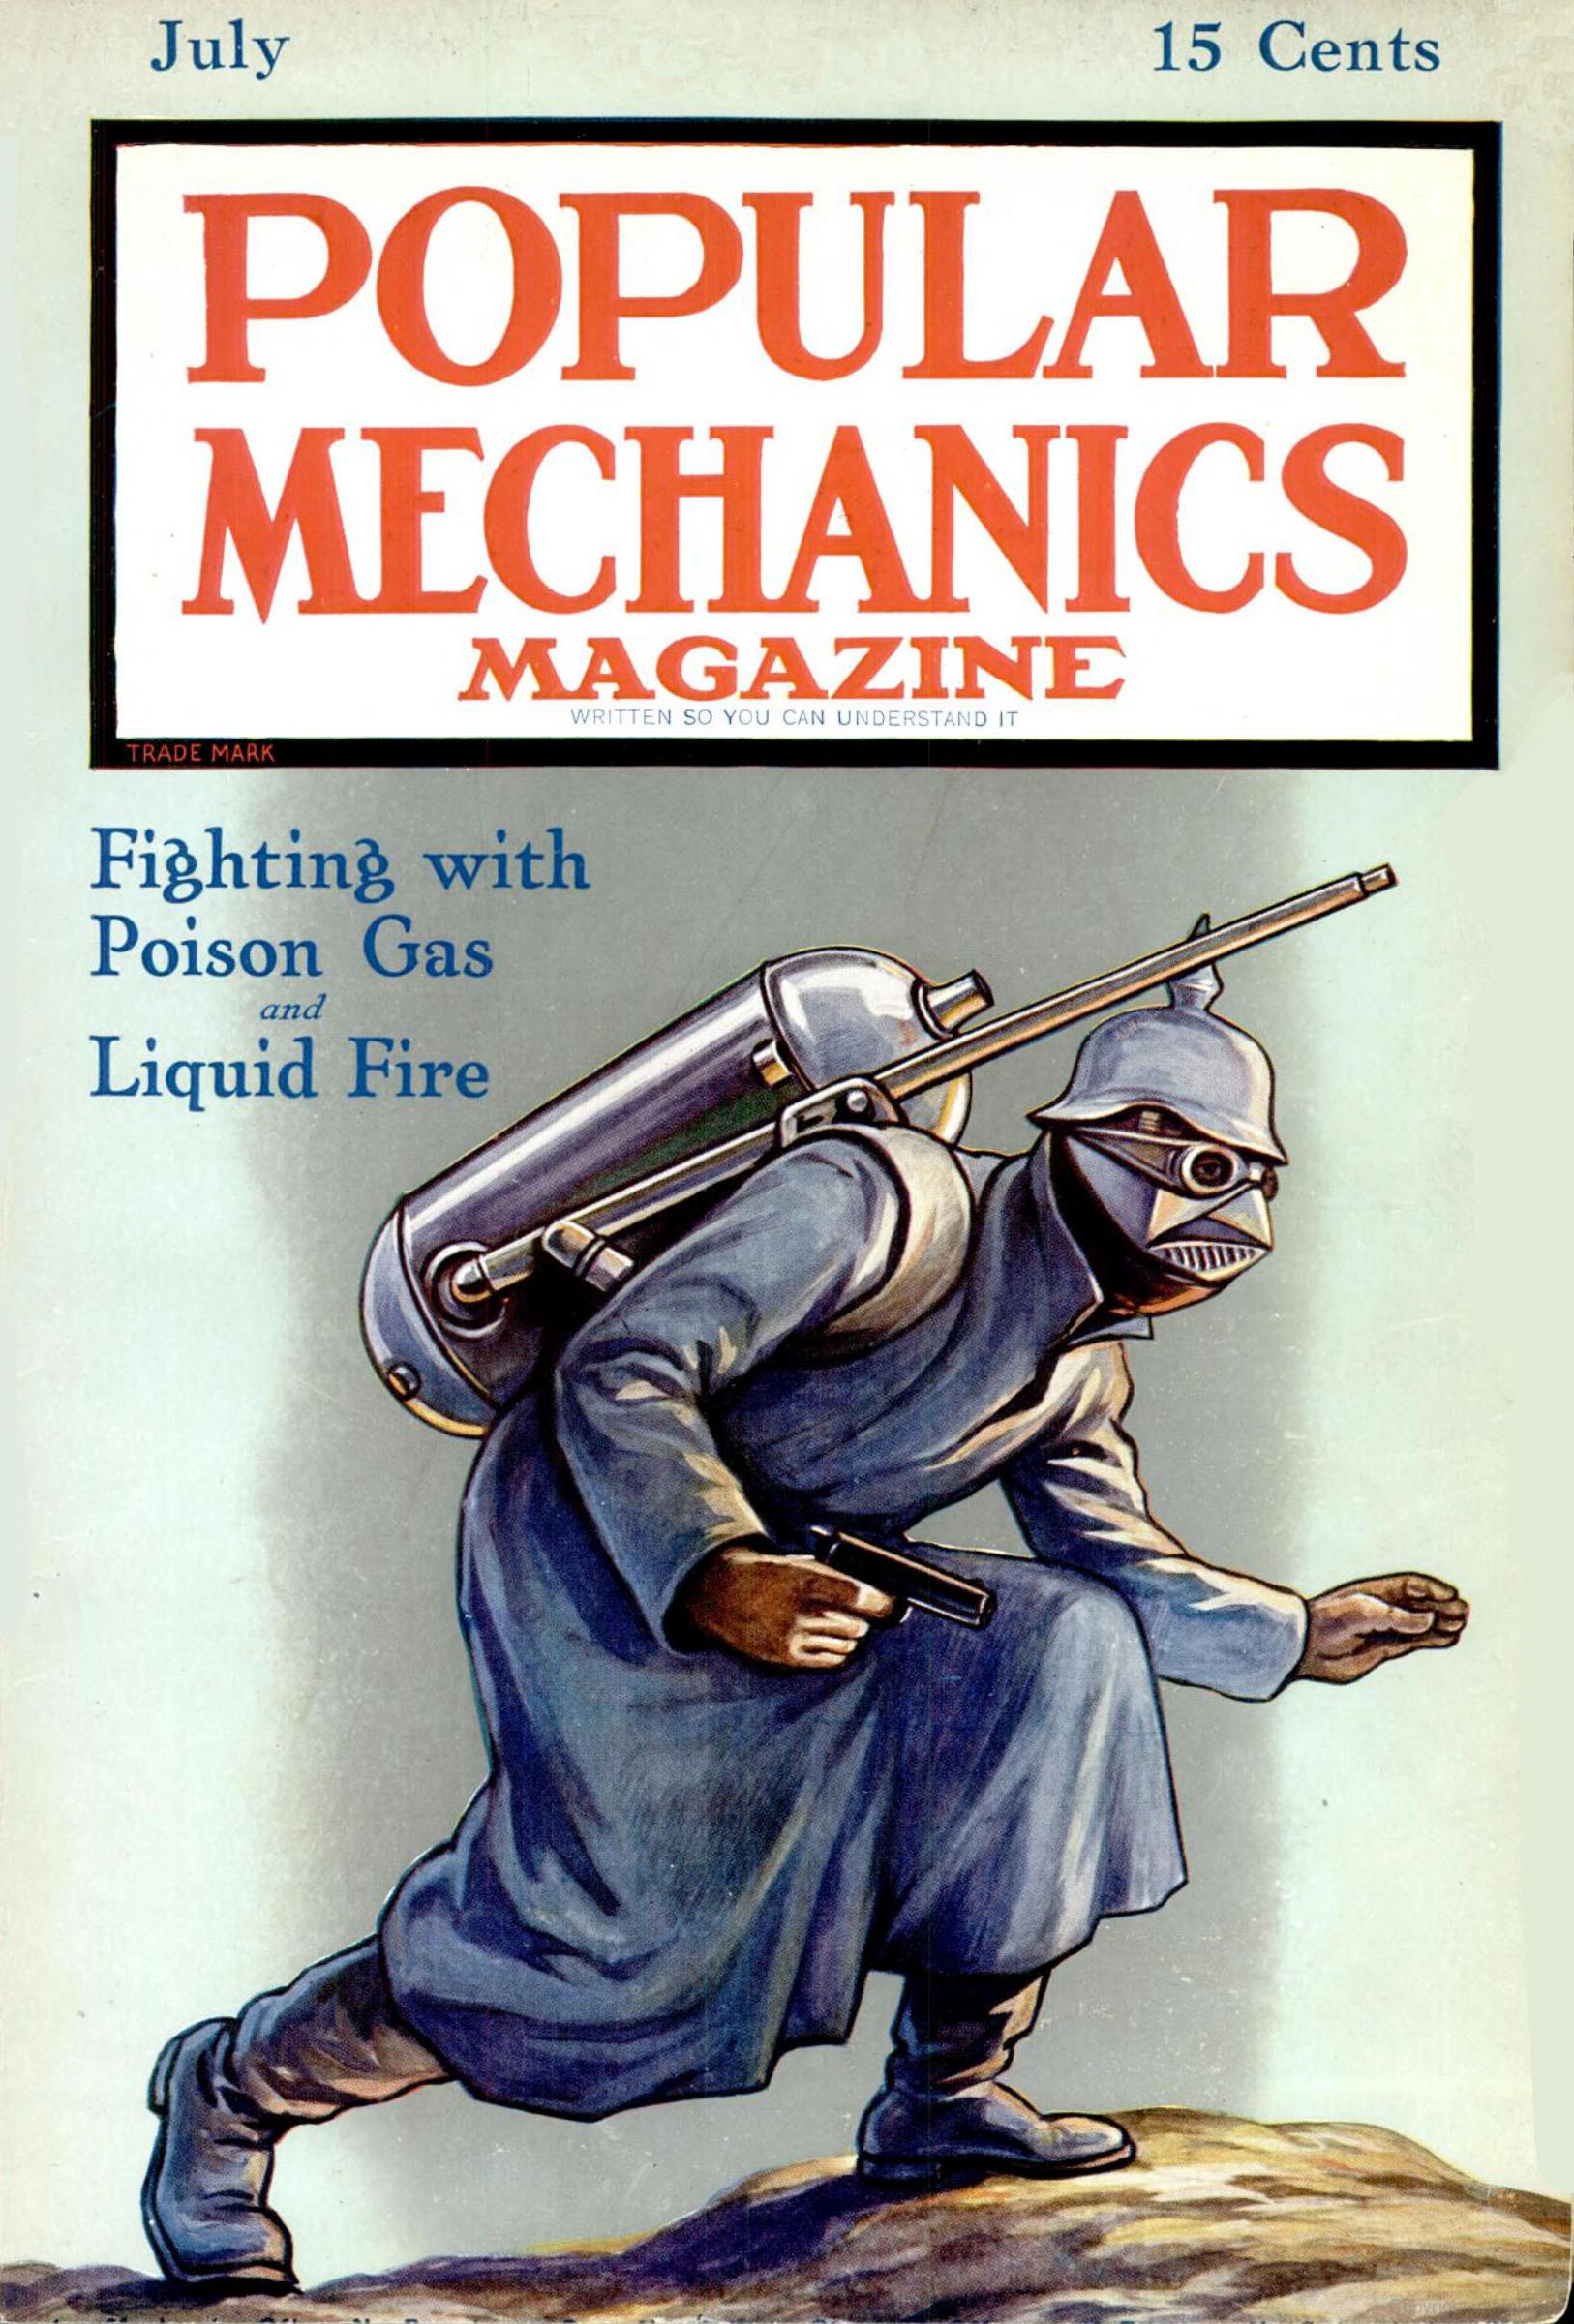 Popular Mechanics, July 1915